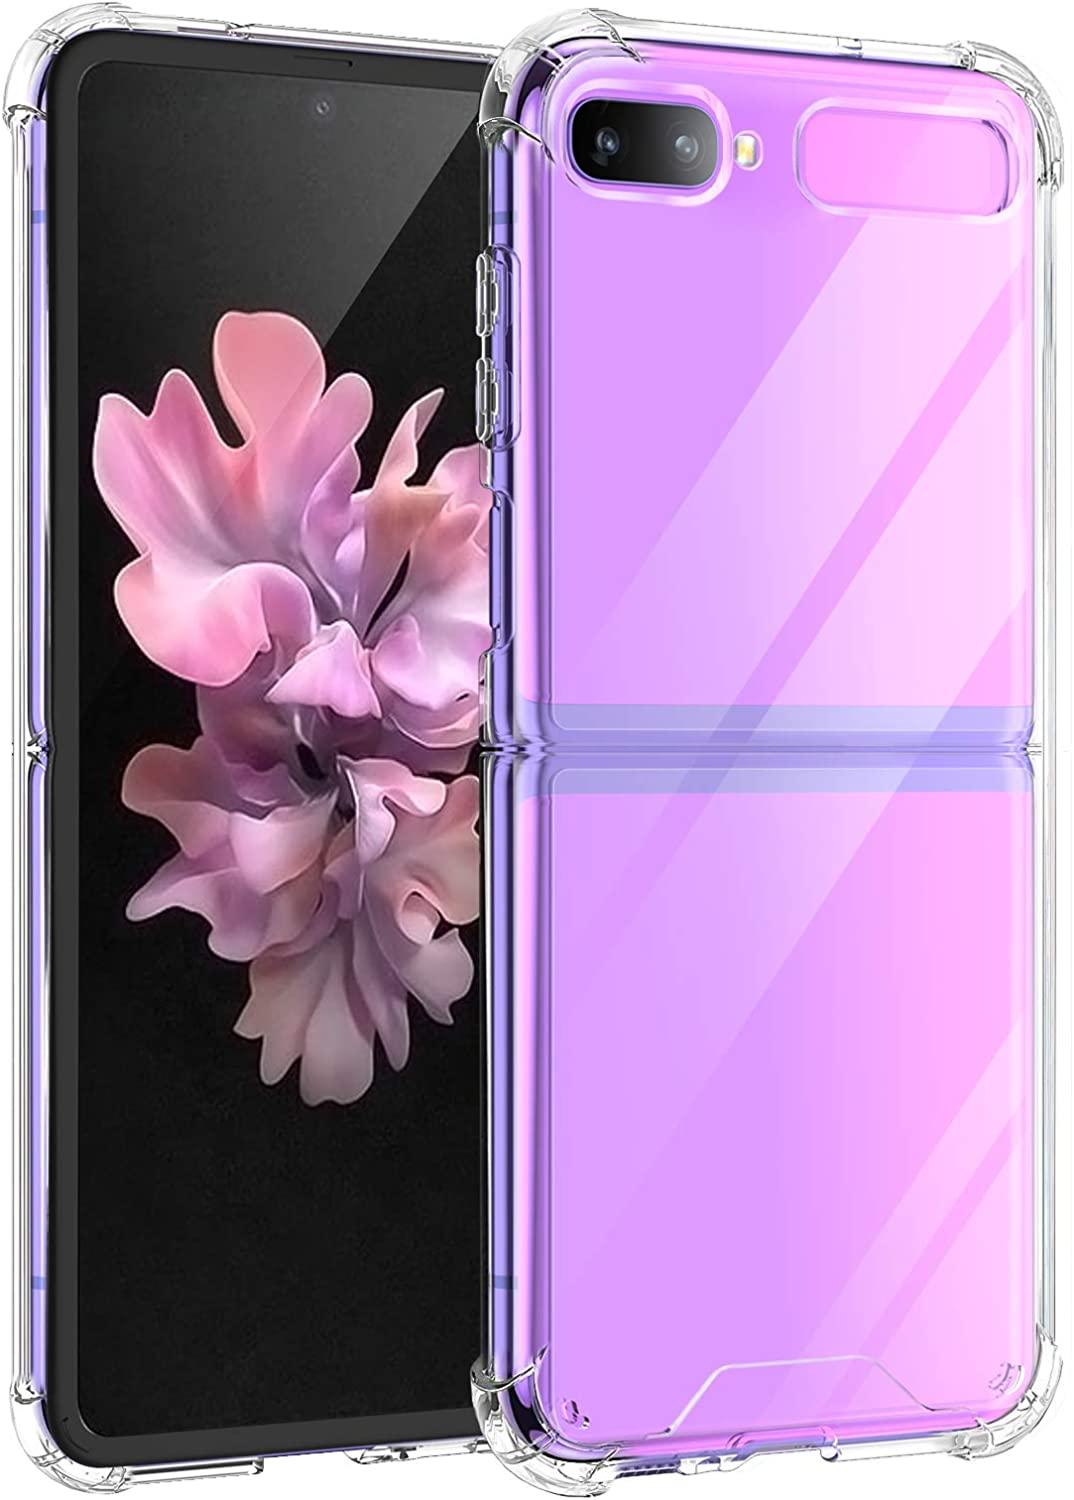 Newseego Compatible with Samsung Galaxy Z Flip Case 2020 4G/5G Clear Crystal Hard PC and Soft TPU Rubber Bumper Protective Shockproof Anti-Scratch Transparent Support Wireless Charging